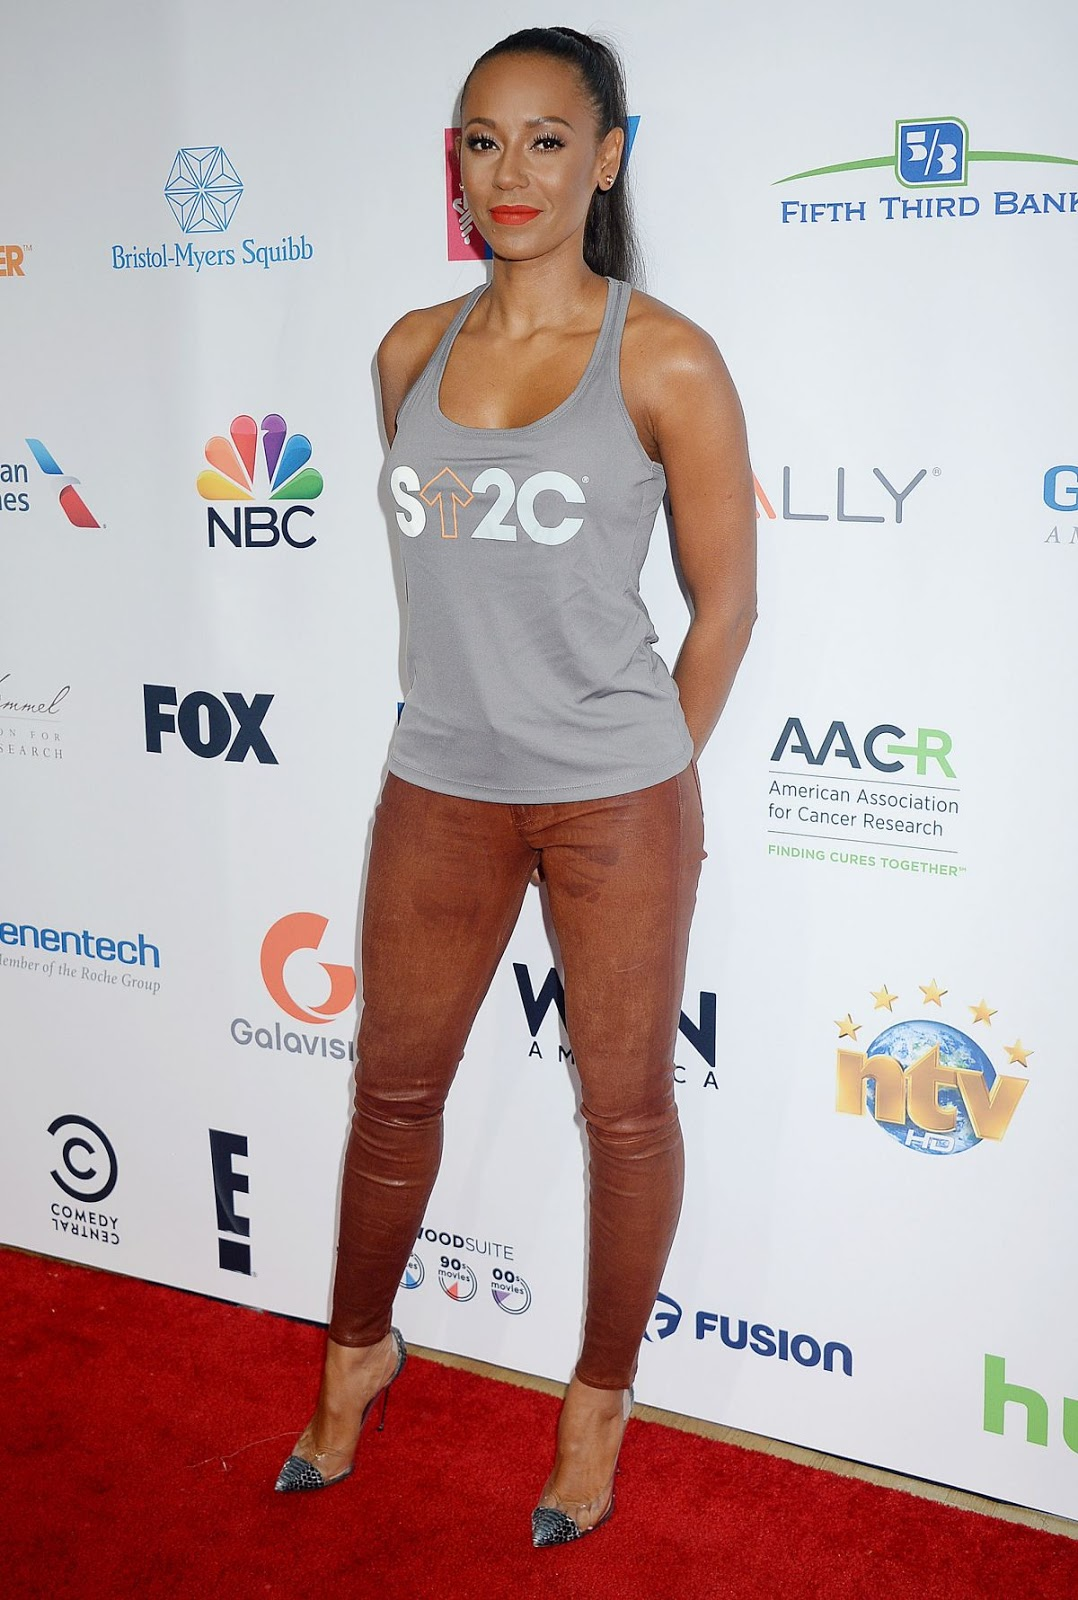 HD Photos of Melanie Brown At 5th Biennial Stand Up To Cancer In Los Angeles